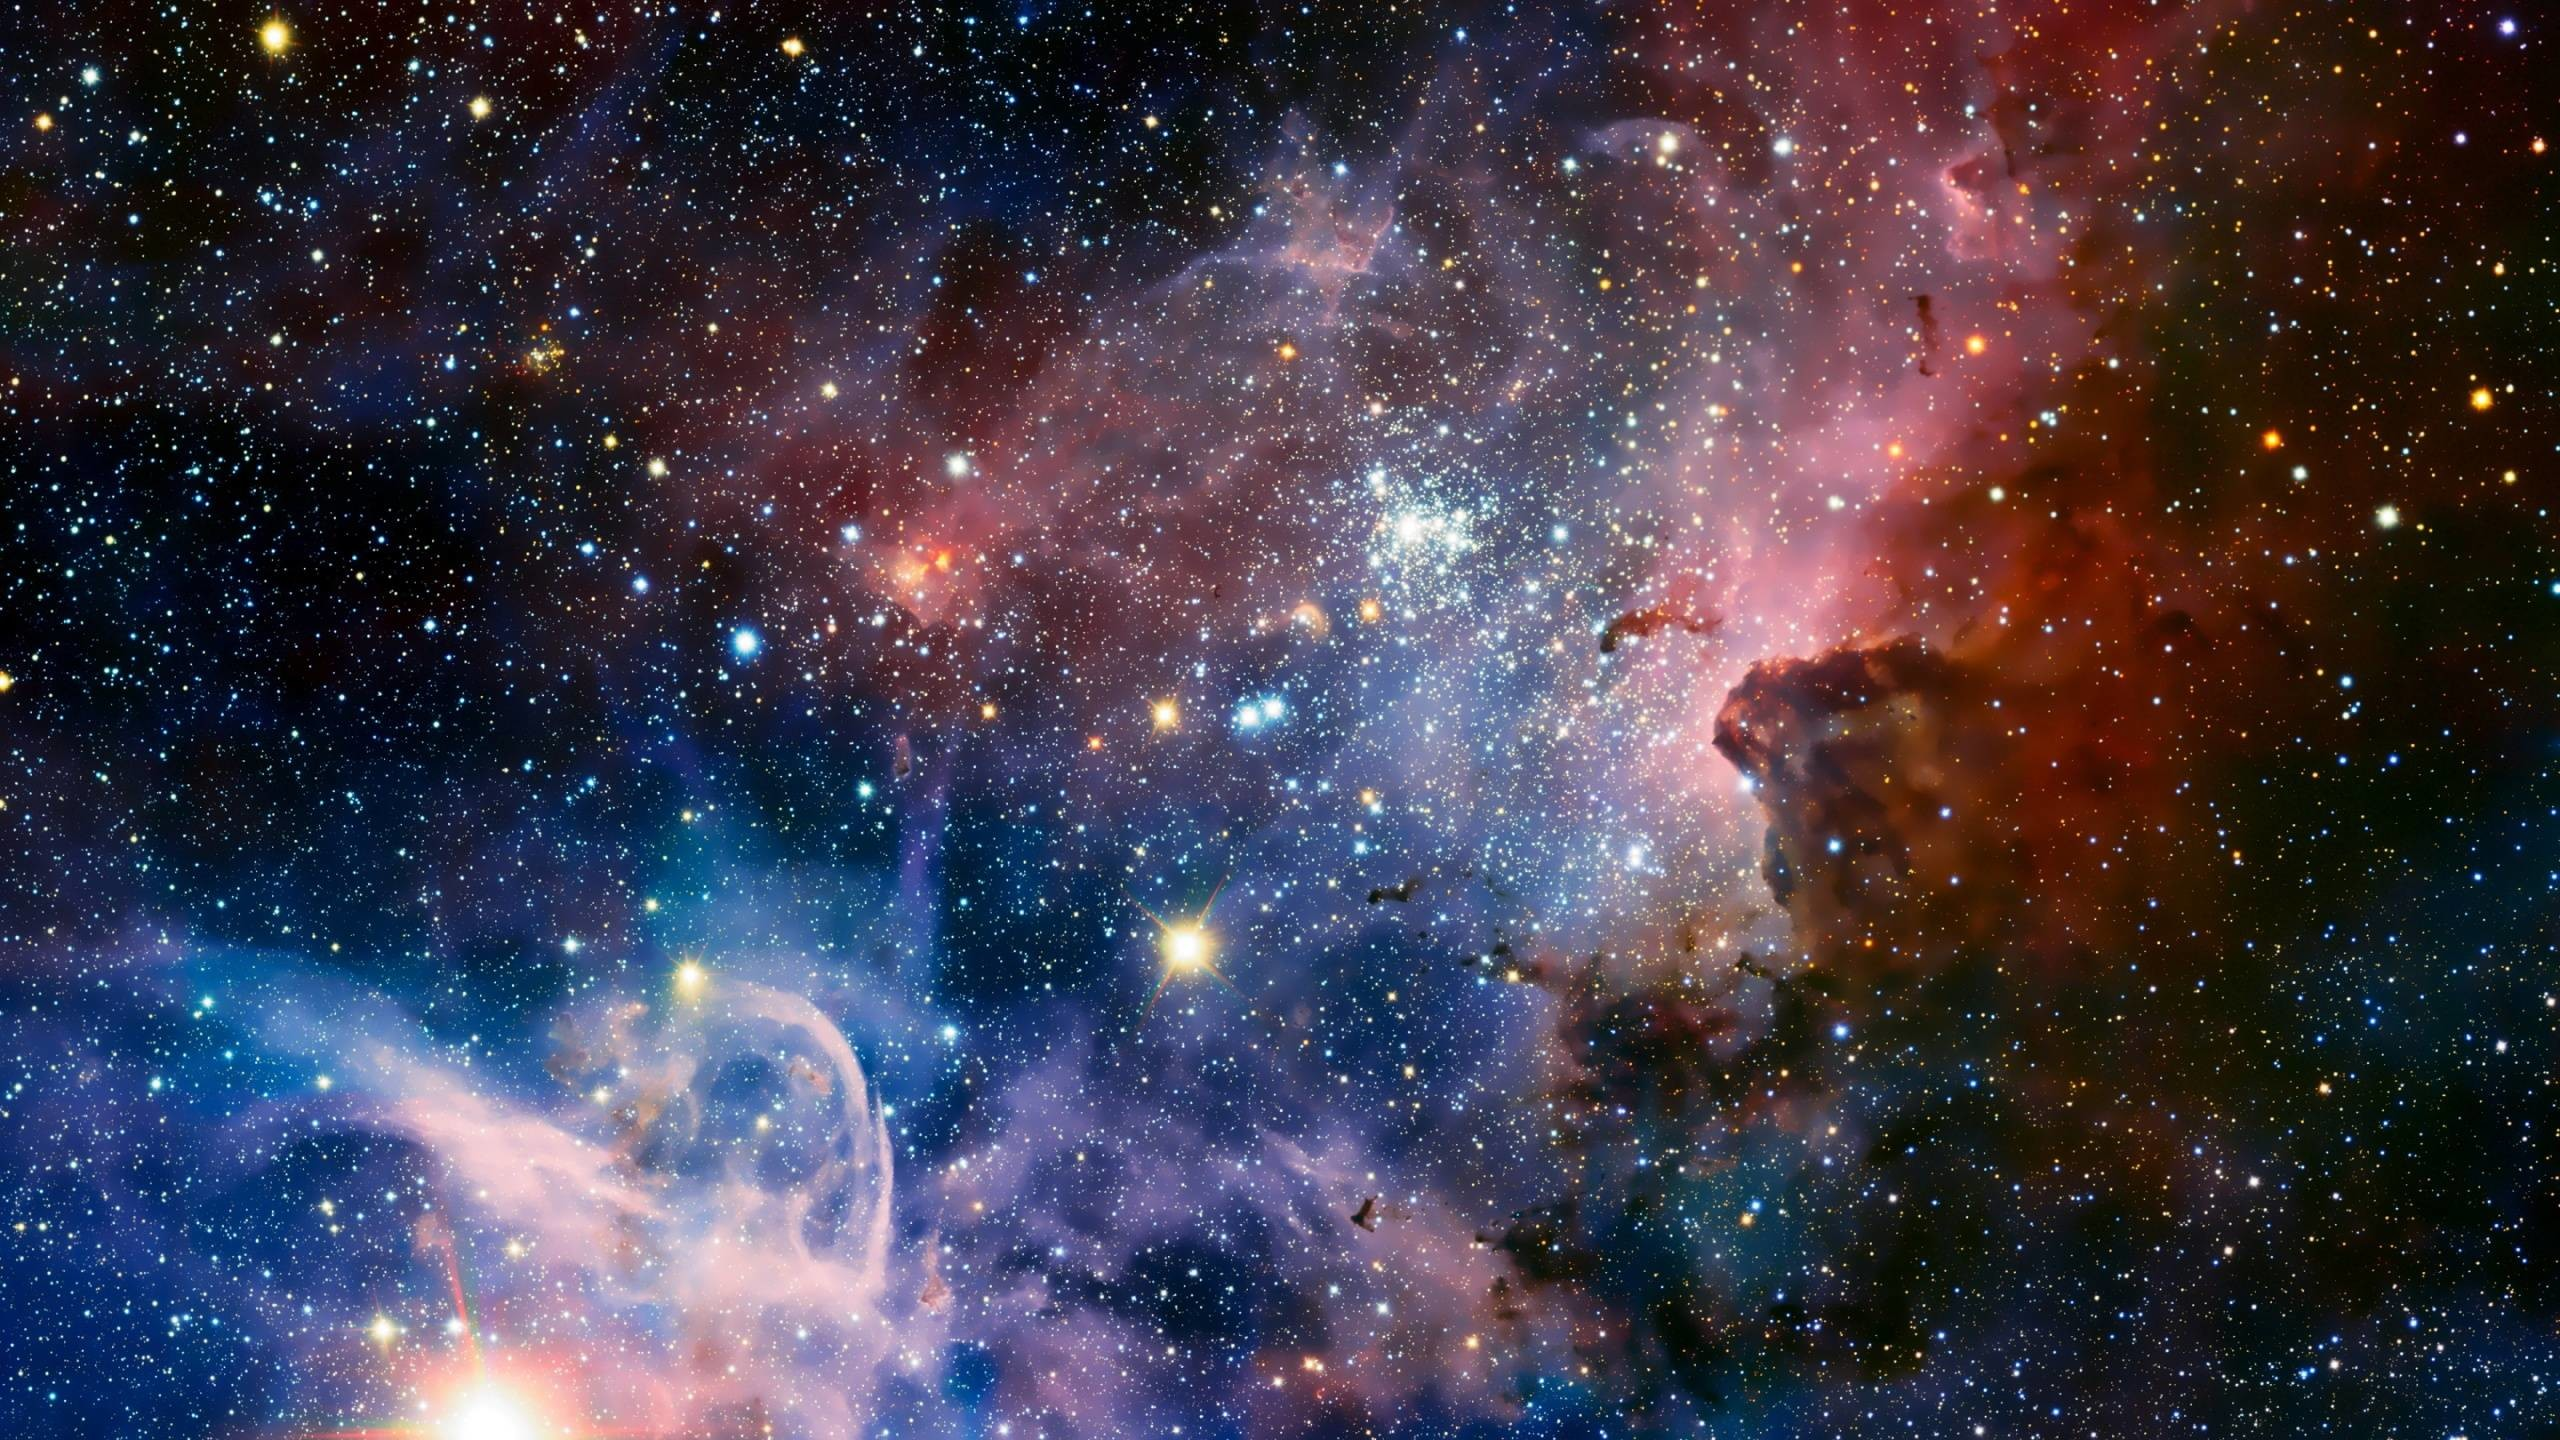 2560x1440 Wallpapers For > Cool Backgrounds Of Space With Stars